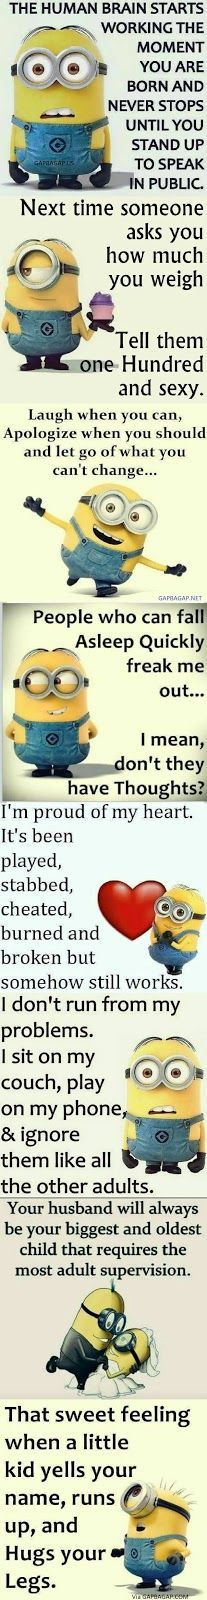 Funny Minion Collection From around The World – funny minion memes, Funny Minion Quo...